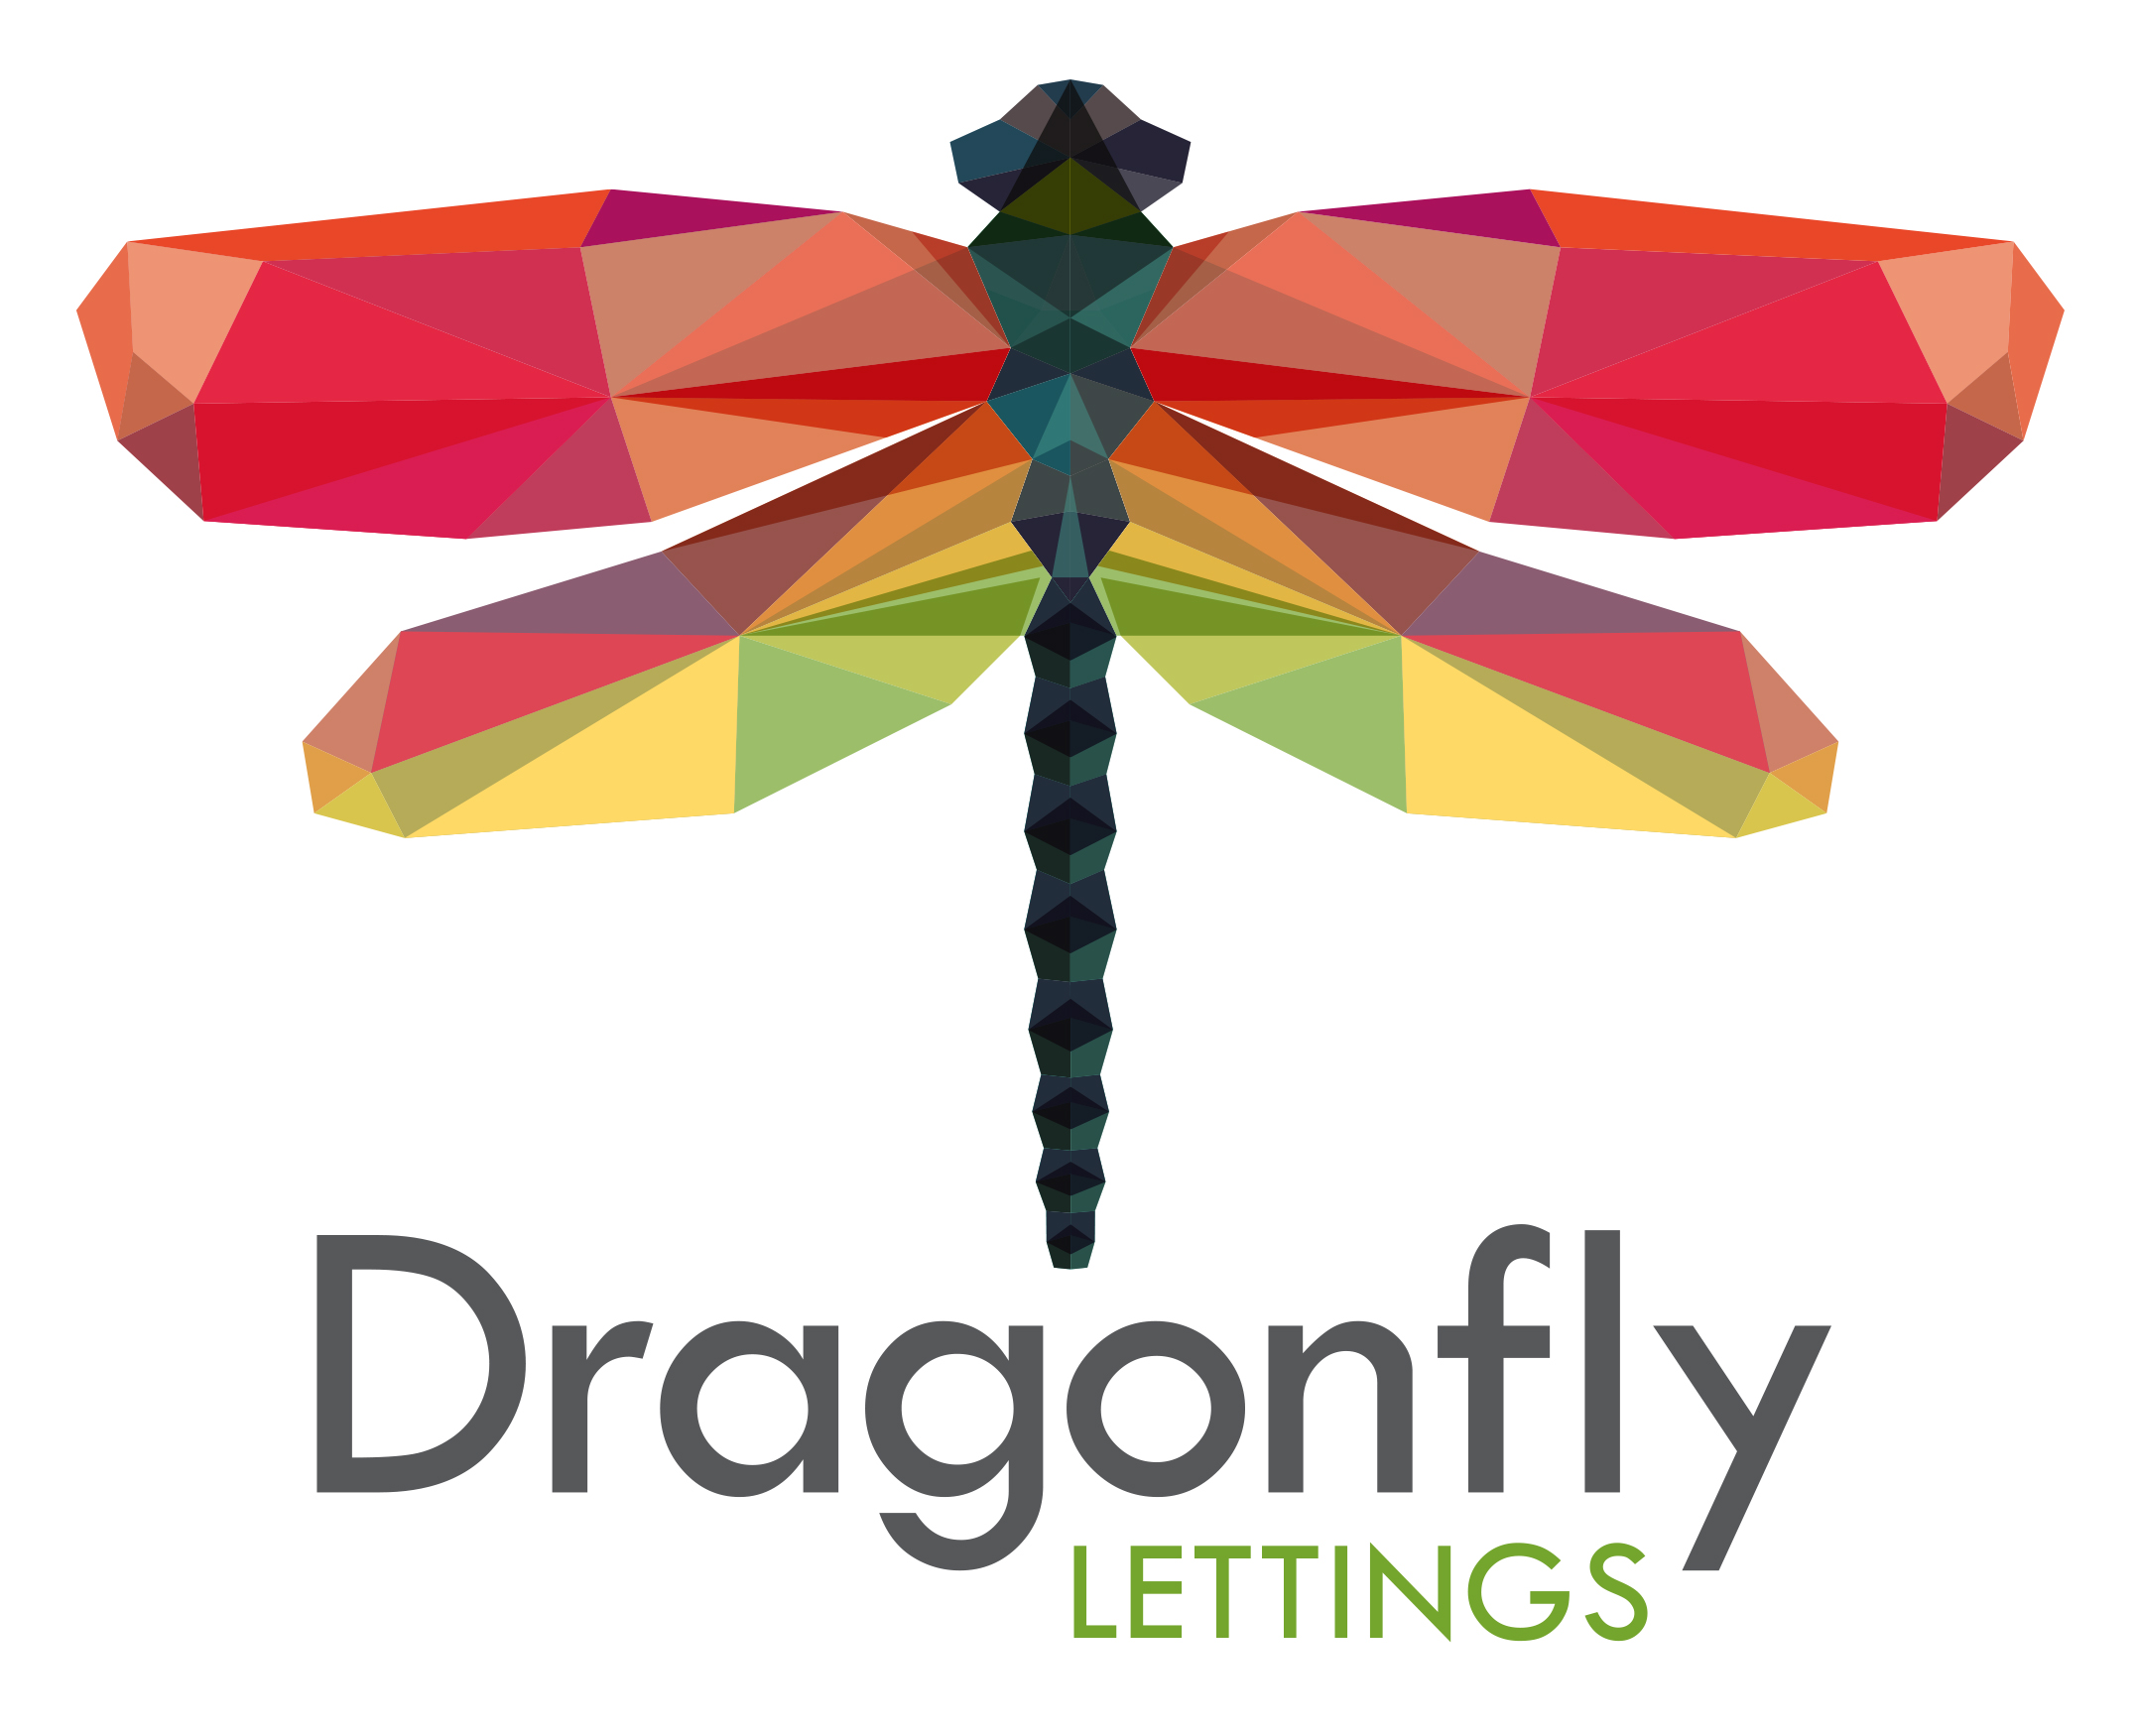 Dragonfly Lettings